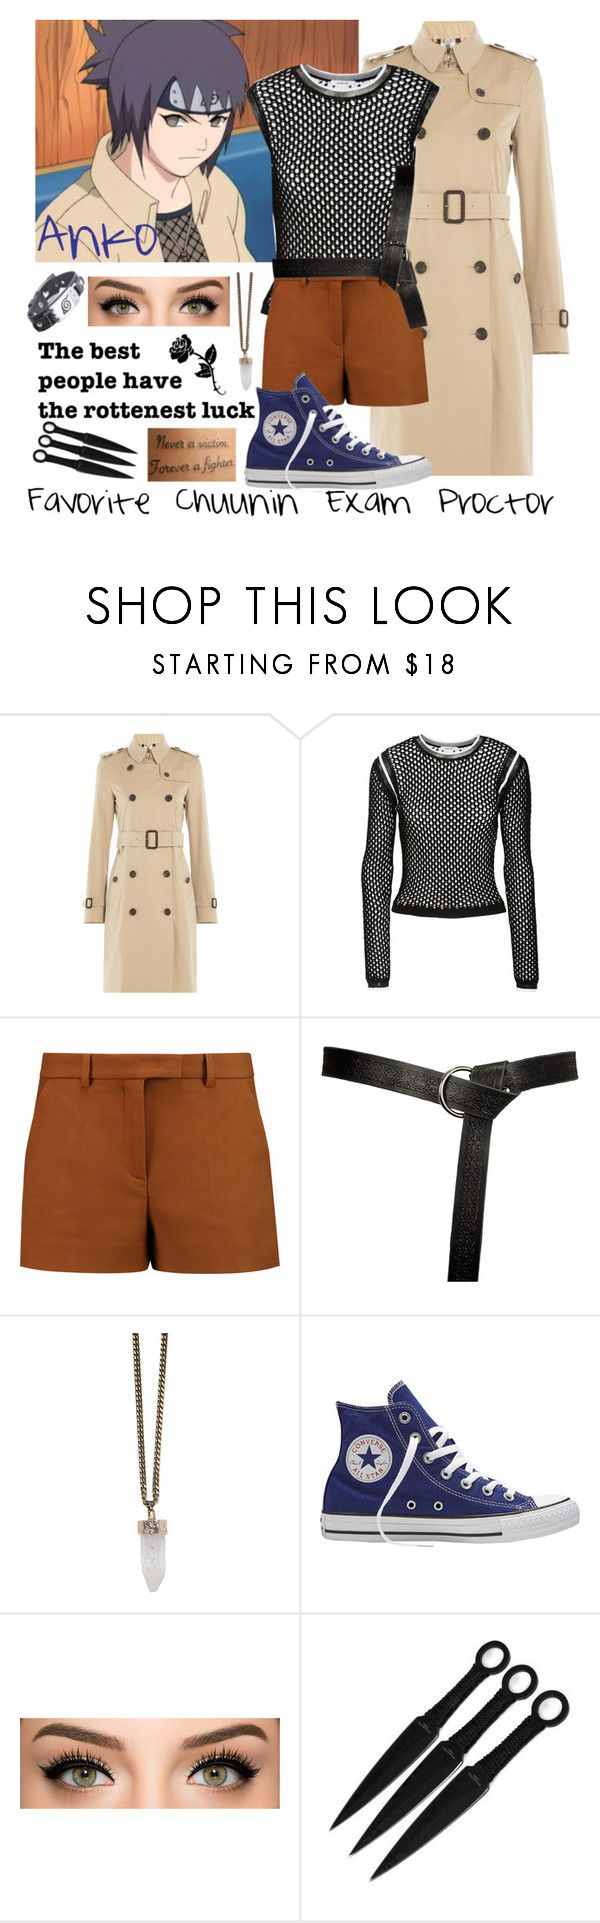 """Day 6~ Favorite Chuunin Exam Proctor"" by frizzleliz ❤ liked on Polyvore featuring Burberry, Helmut Lang, Emilio Pucci, Givenchy, Converse, Gypsy, anime, naruto, anko and narutochallenge"